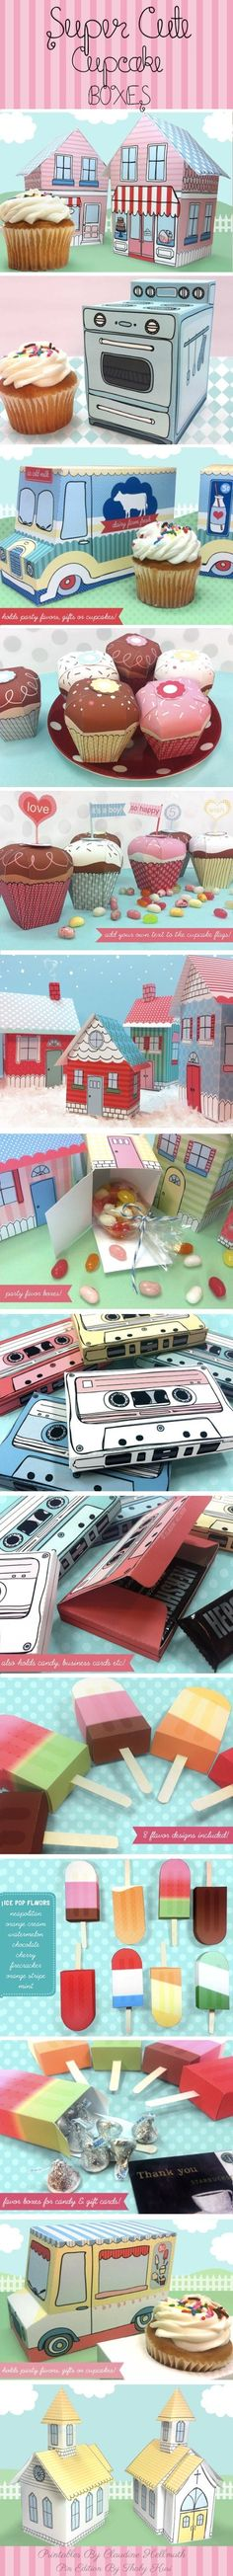 Funny pictures about Cupcake Boxes. Oh, and cool pics about Cupcake Boxes. Also, Cupcake Boxes photos. Cupcake Boxes, Cupcake Art, Cupcake Holders, Brand Packaging, Packaging Design, Cupcake Packaging, Baking Packaging, Custom Packaging, Box Packaging